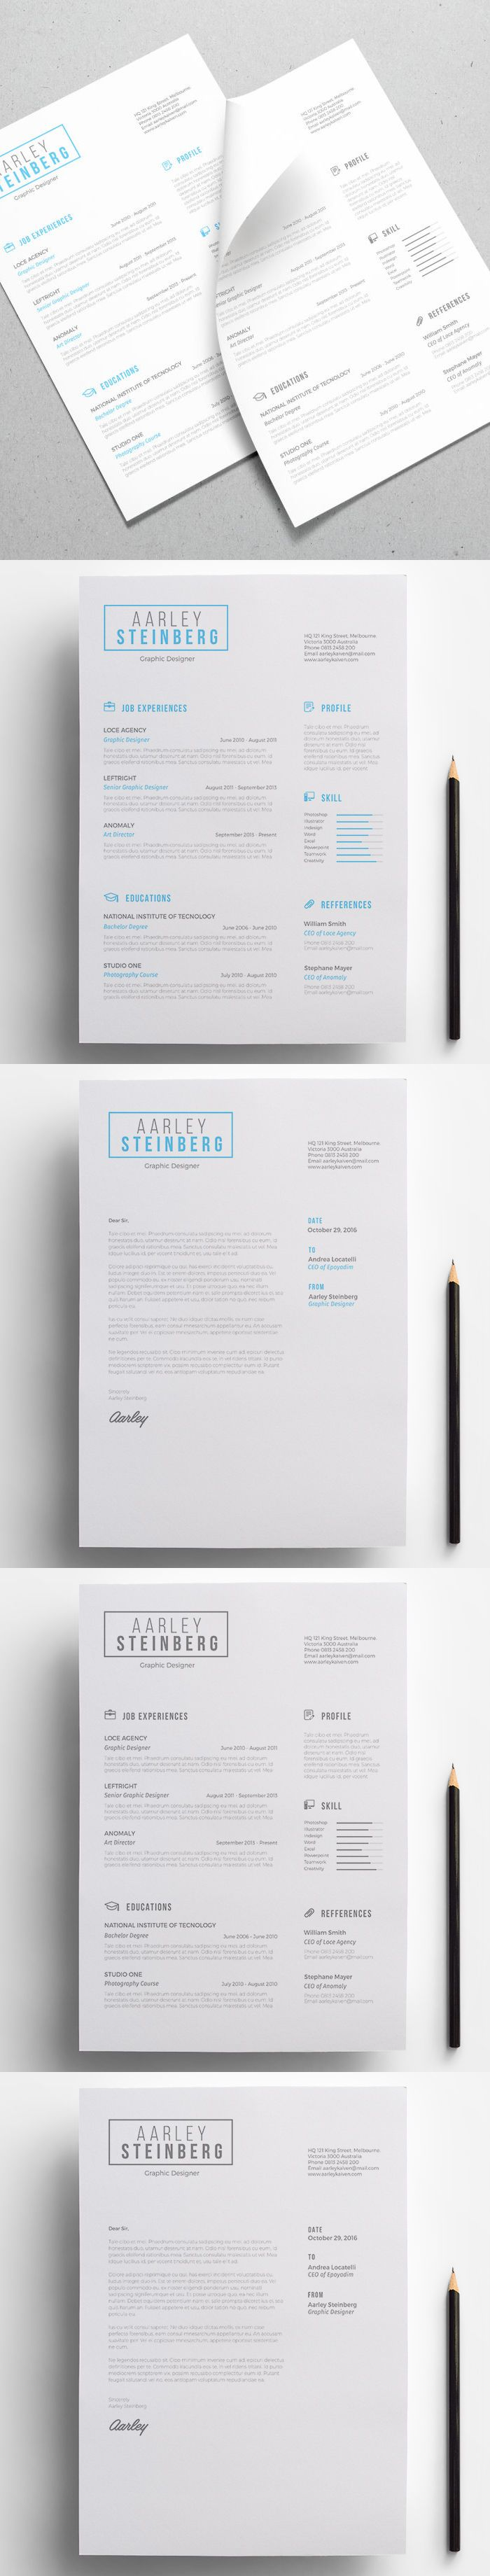 25 trending resume design template ideas on pinterest resume minimal resume is a resume template with simple and clean design template psd ms pronofoot35fo Choice Image